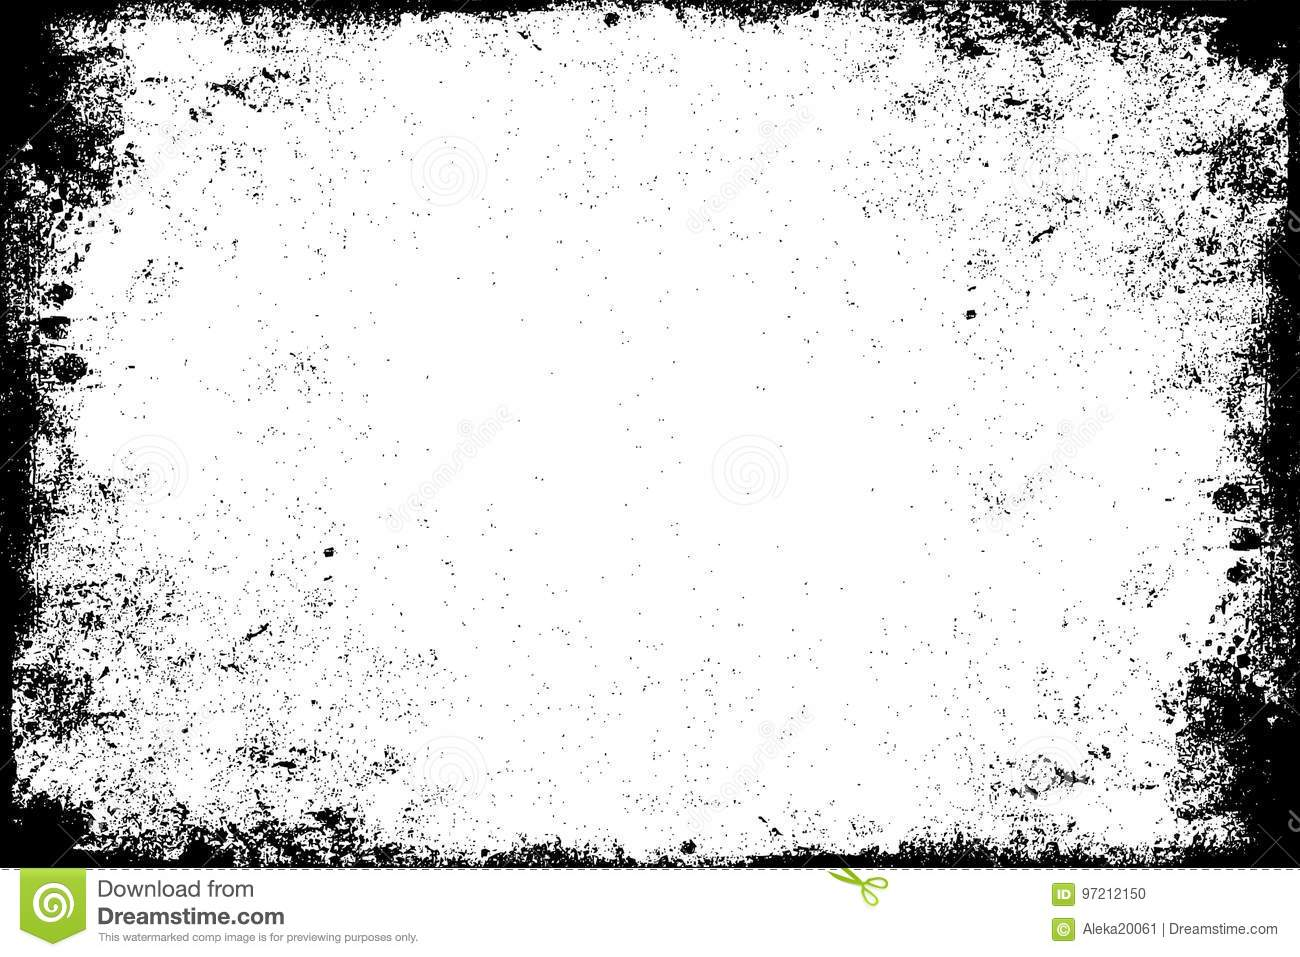 d871ad805fe Dirty black stained frame. Grunge template. White background. Old worn  paint texture.